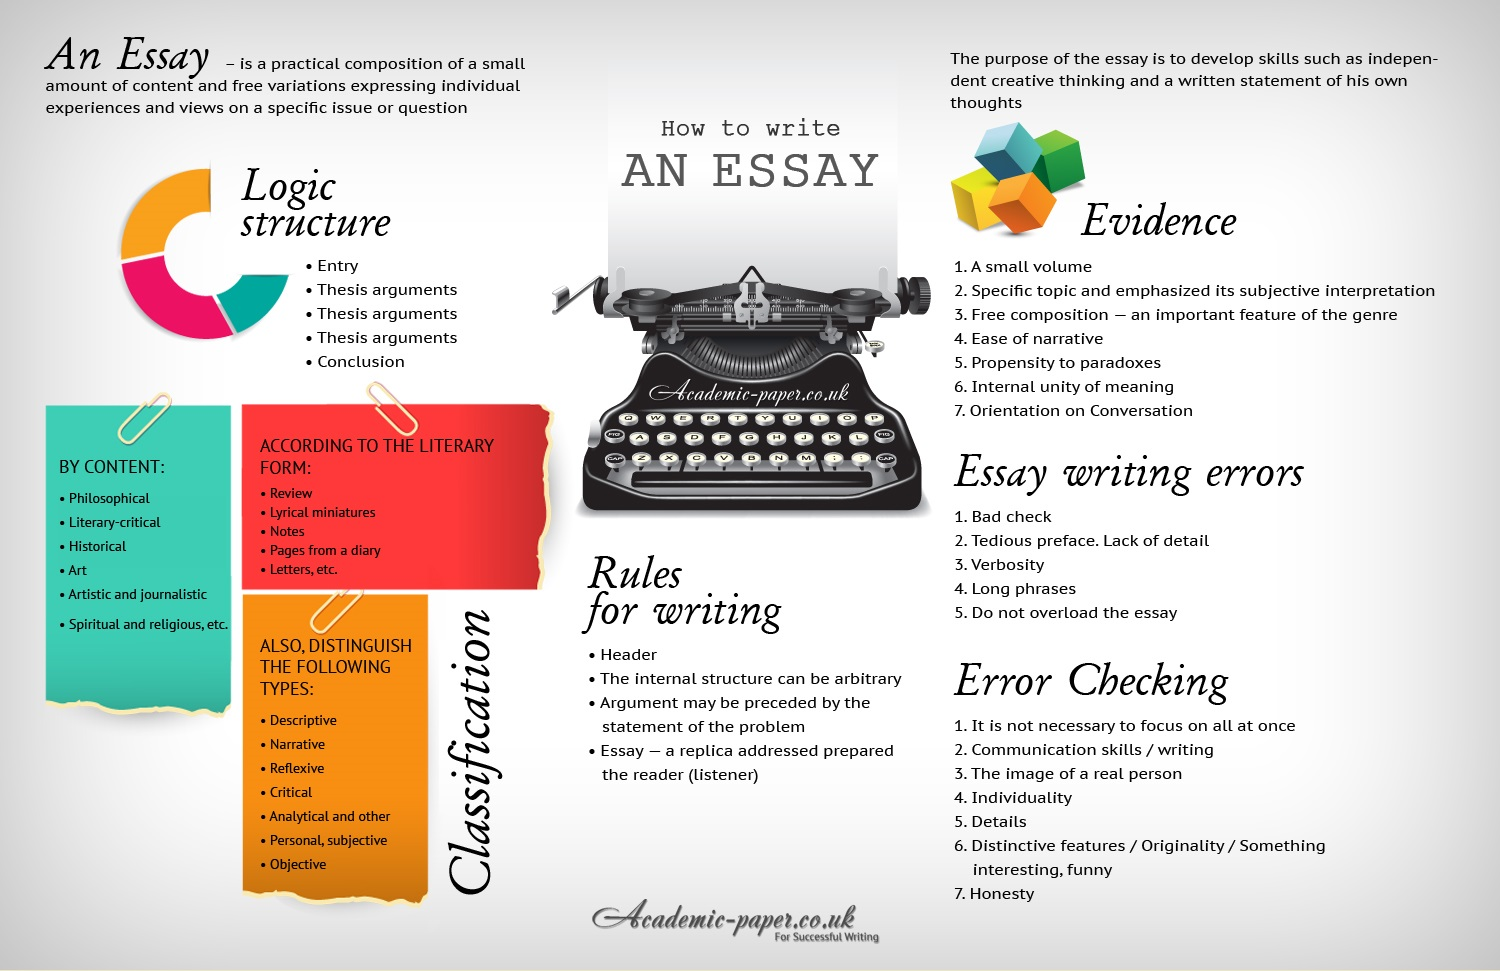 what are steps to writing an essay Guide for writing influential critique essays with 9 easy to understand instructions and 6 compelling tips an argumentative essay is a must for any student reaching a college education.